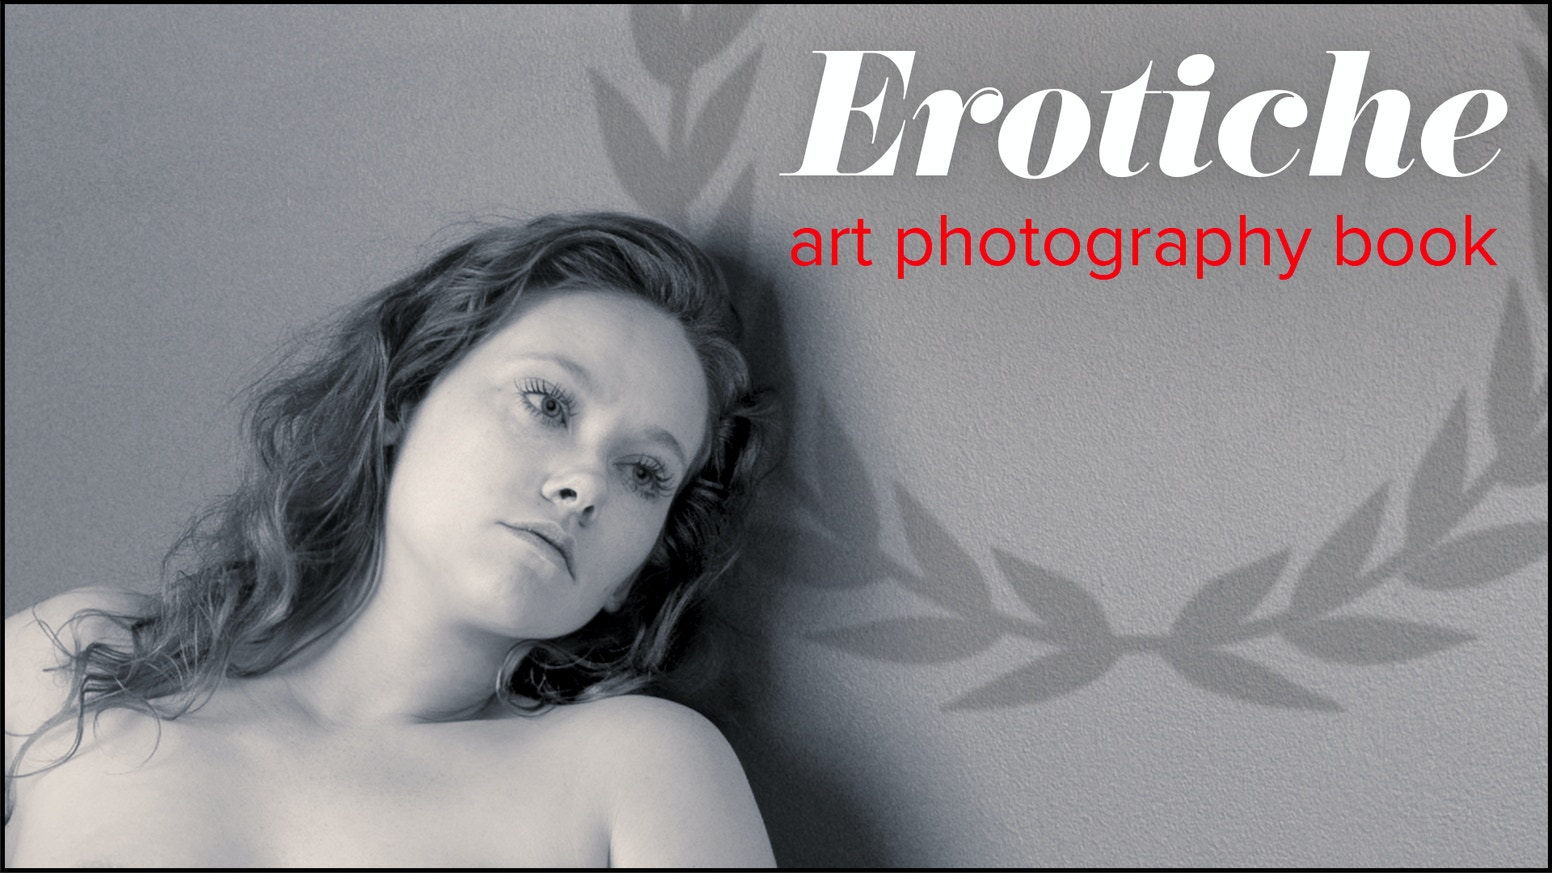 Erotiche is a two-volume art photobook that explores and celebrates sensual photography. Artistic, but intended for a mature audience.